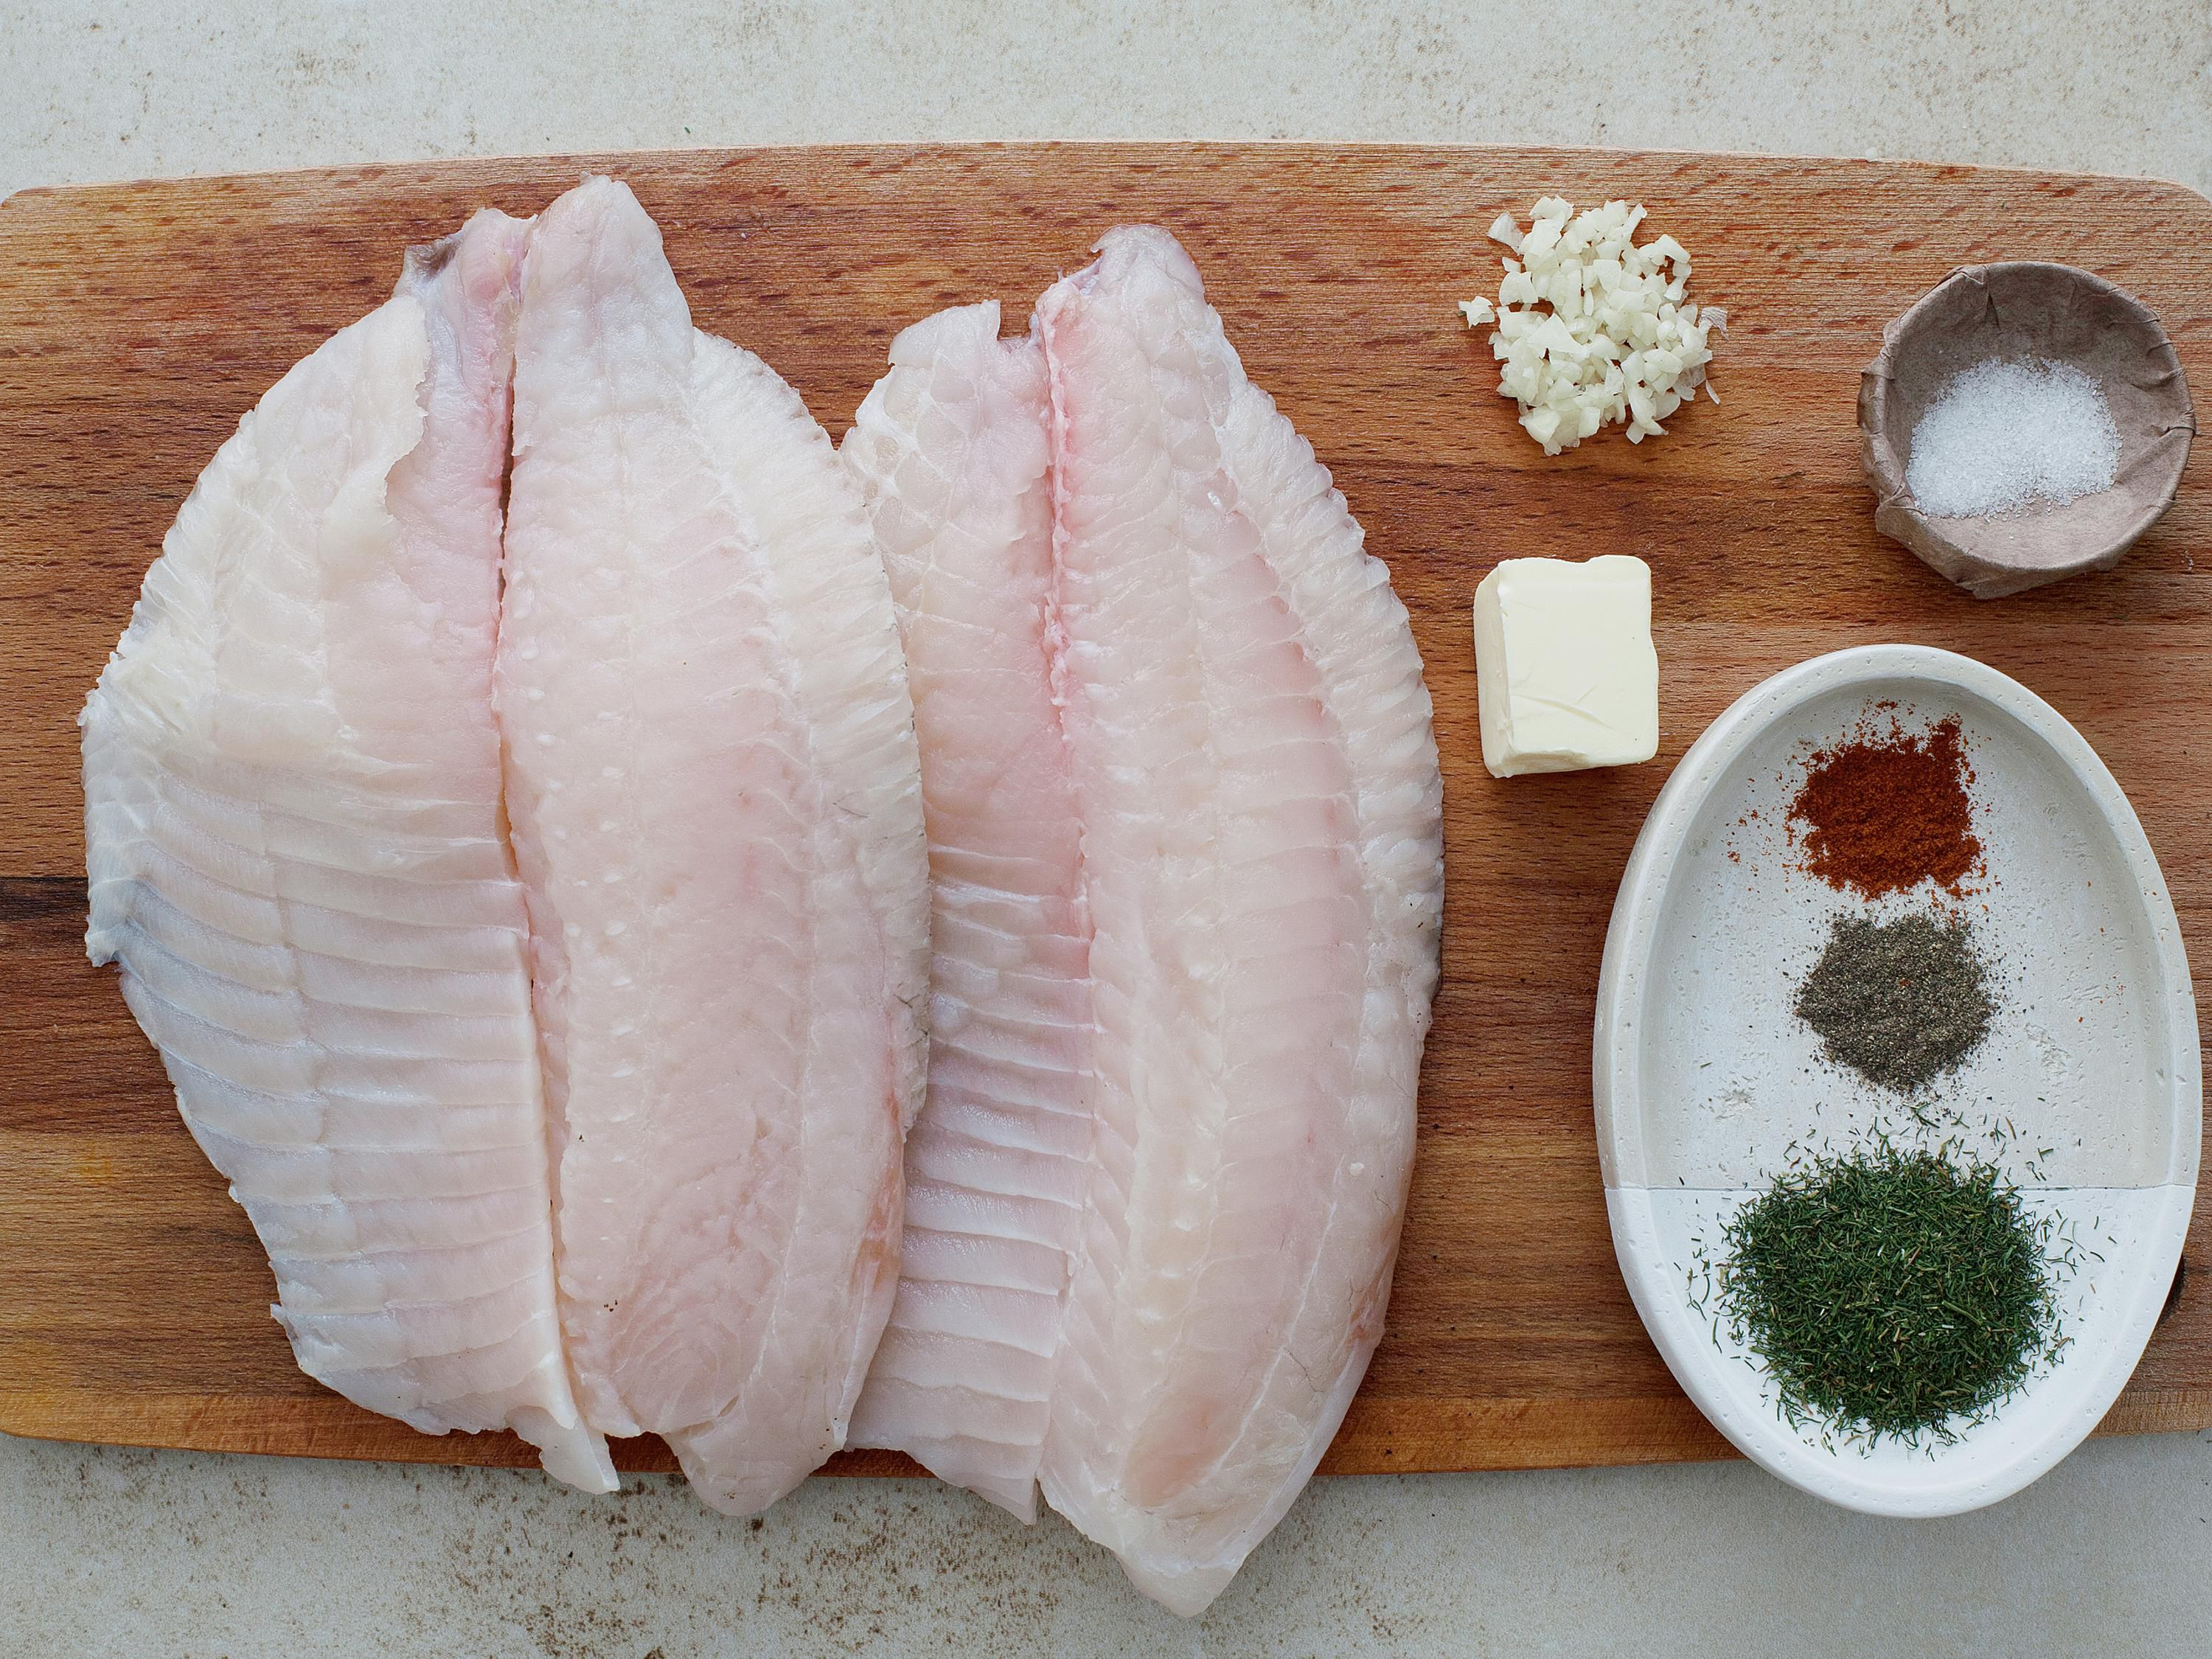 Baked Tilapia With Garlic Butter Ingredients